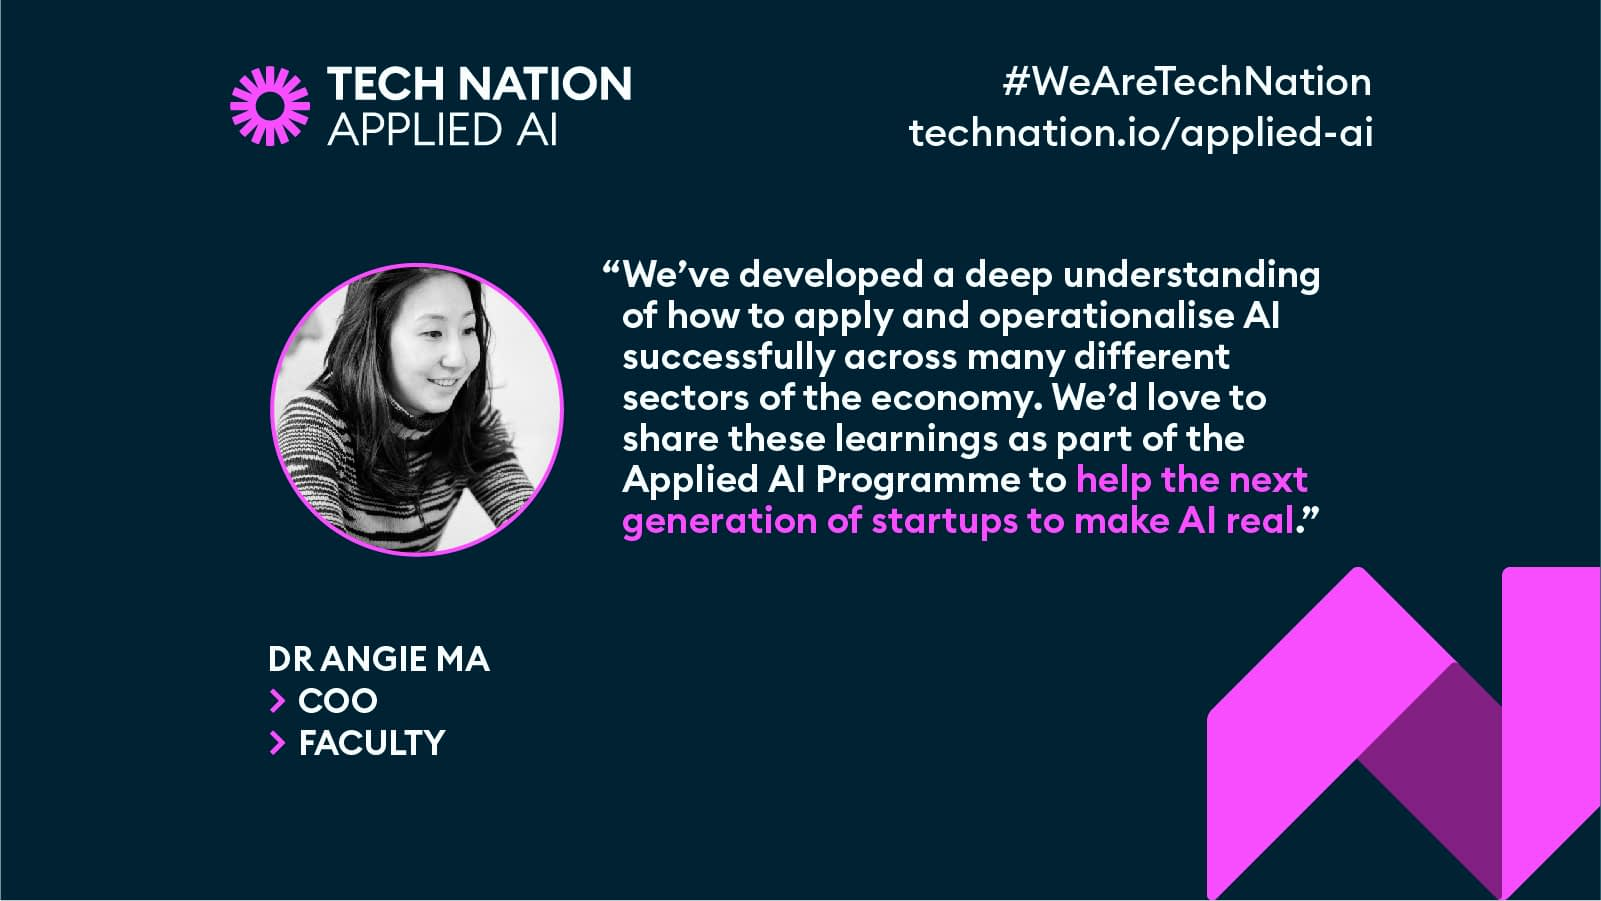 Angie Ma on Tech Nation's AI growth prgramme